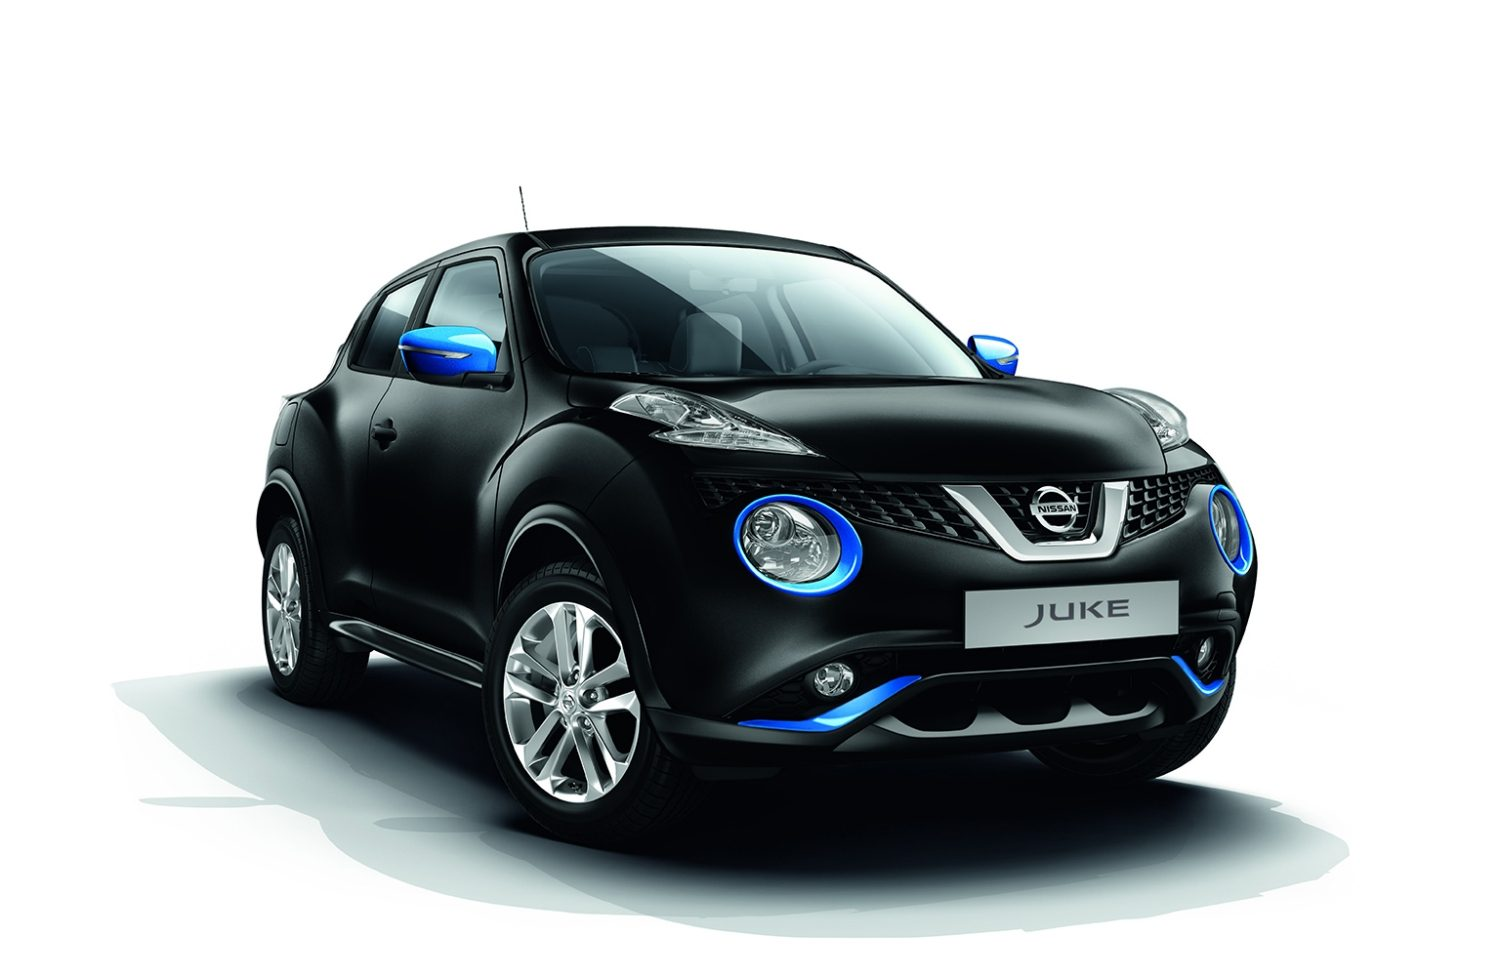 offre partir de 16990 nissan juke petit suv crossover nissan. Black Bedroom Furniture Sets. Home Design Ideas